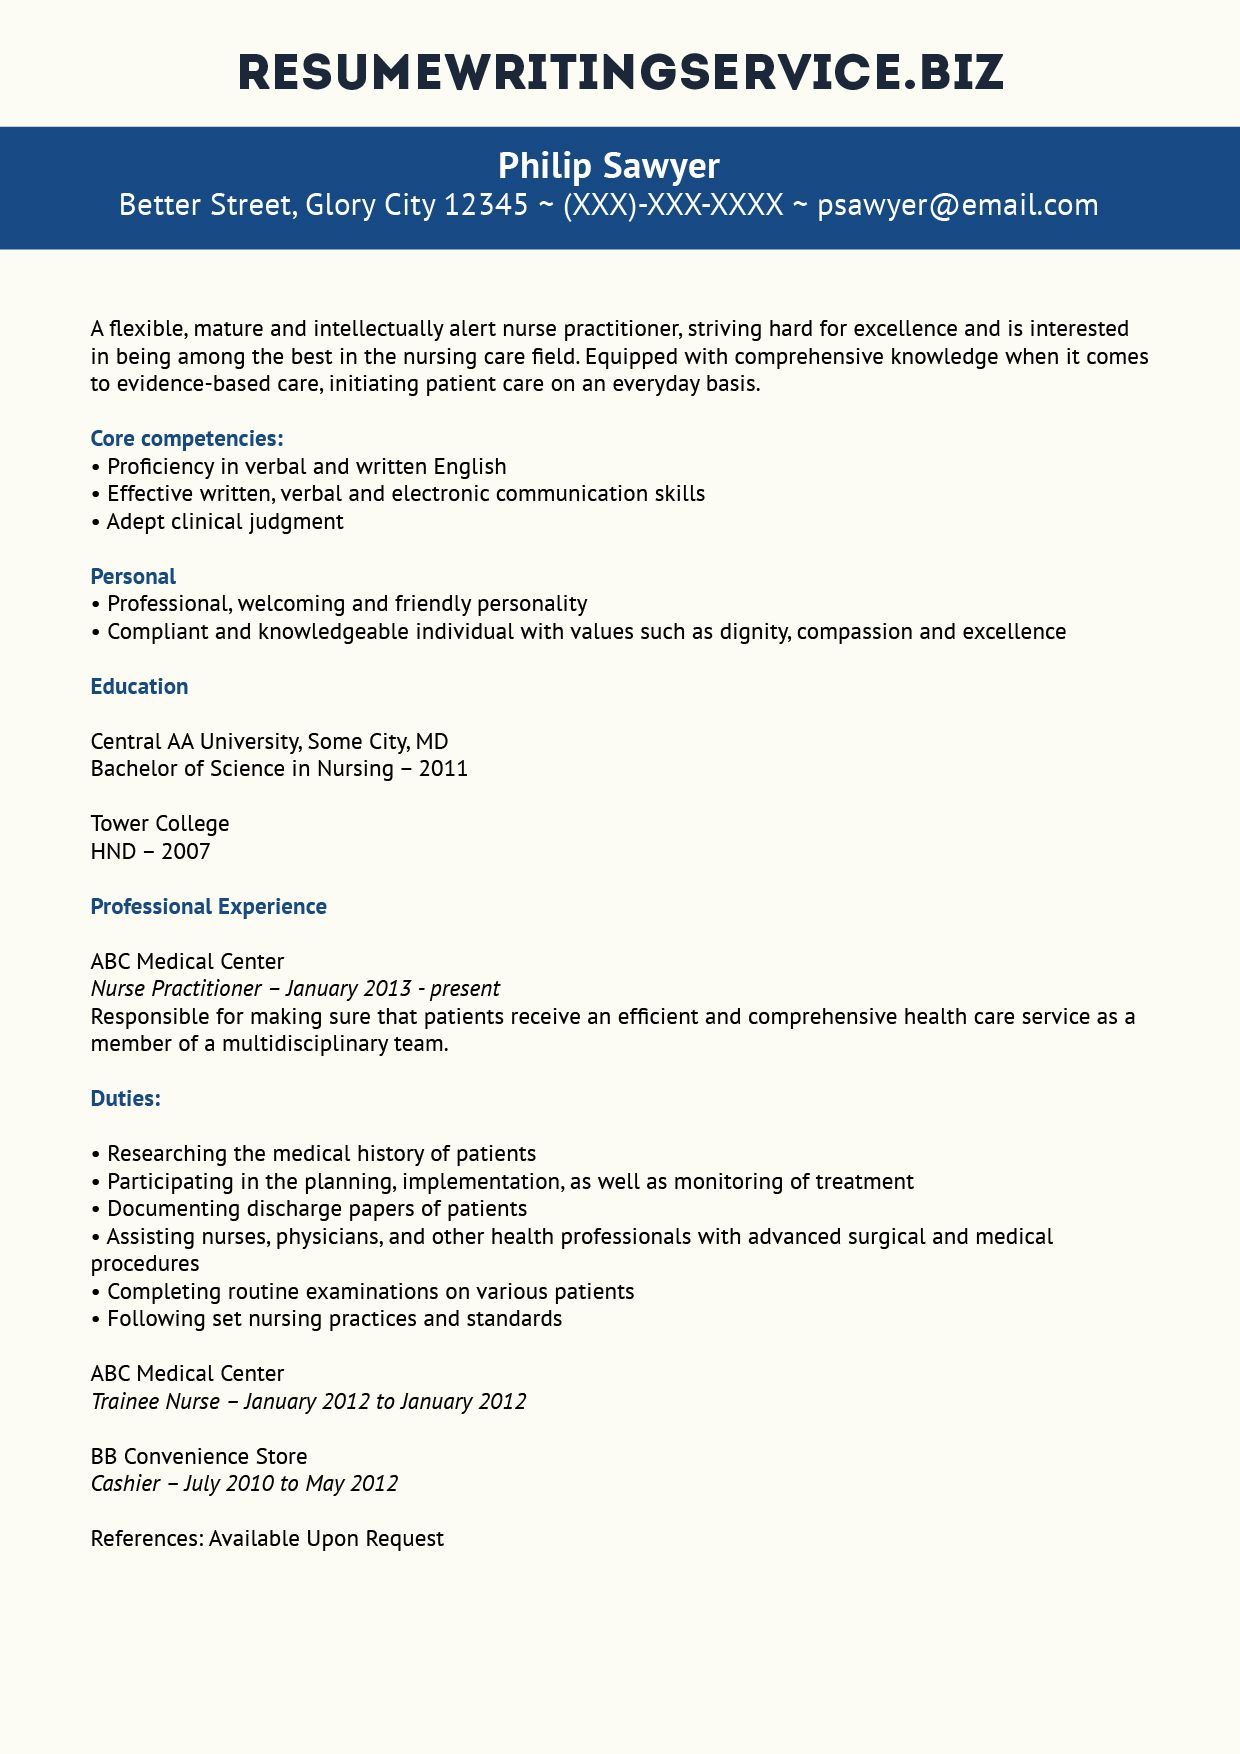 top nurse practitioner resume sample programs career advancement advice writing for Resume Resume Writing For Nurse Practitioners